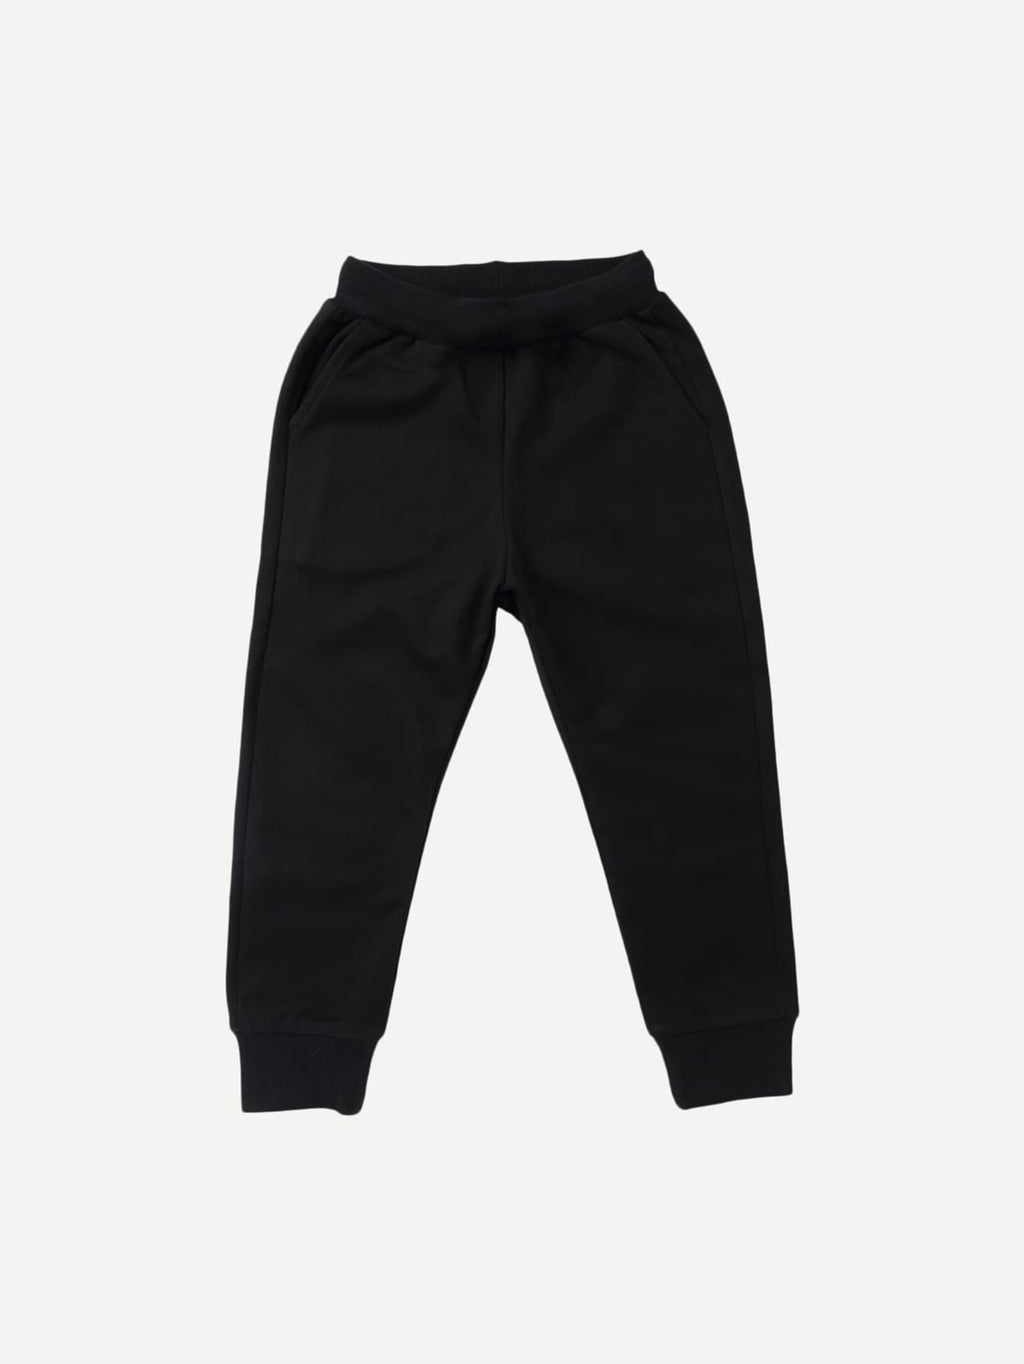 Toddler Boy Pants - Plain Drawstring Pants